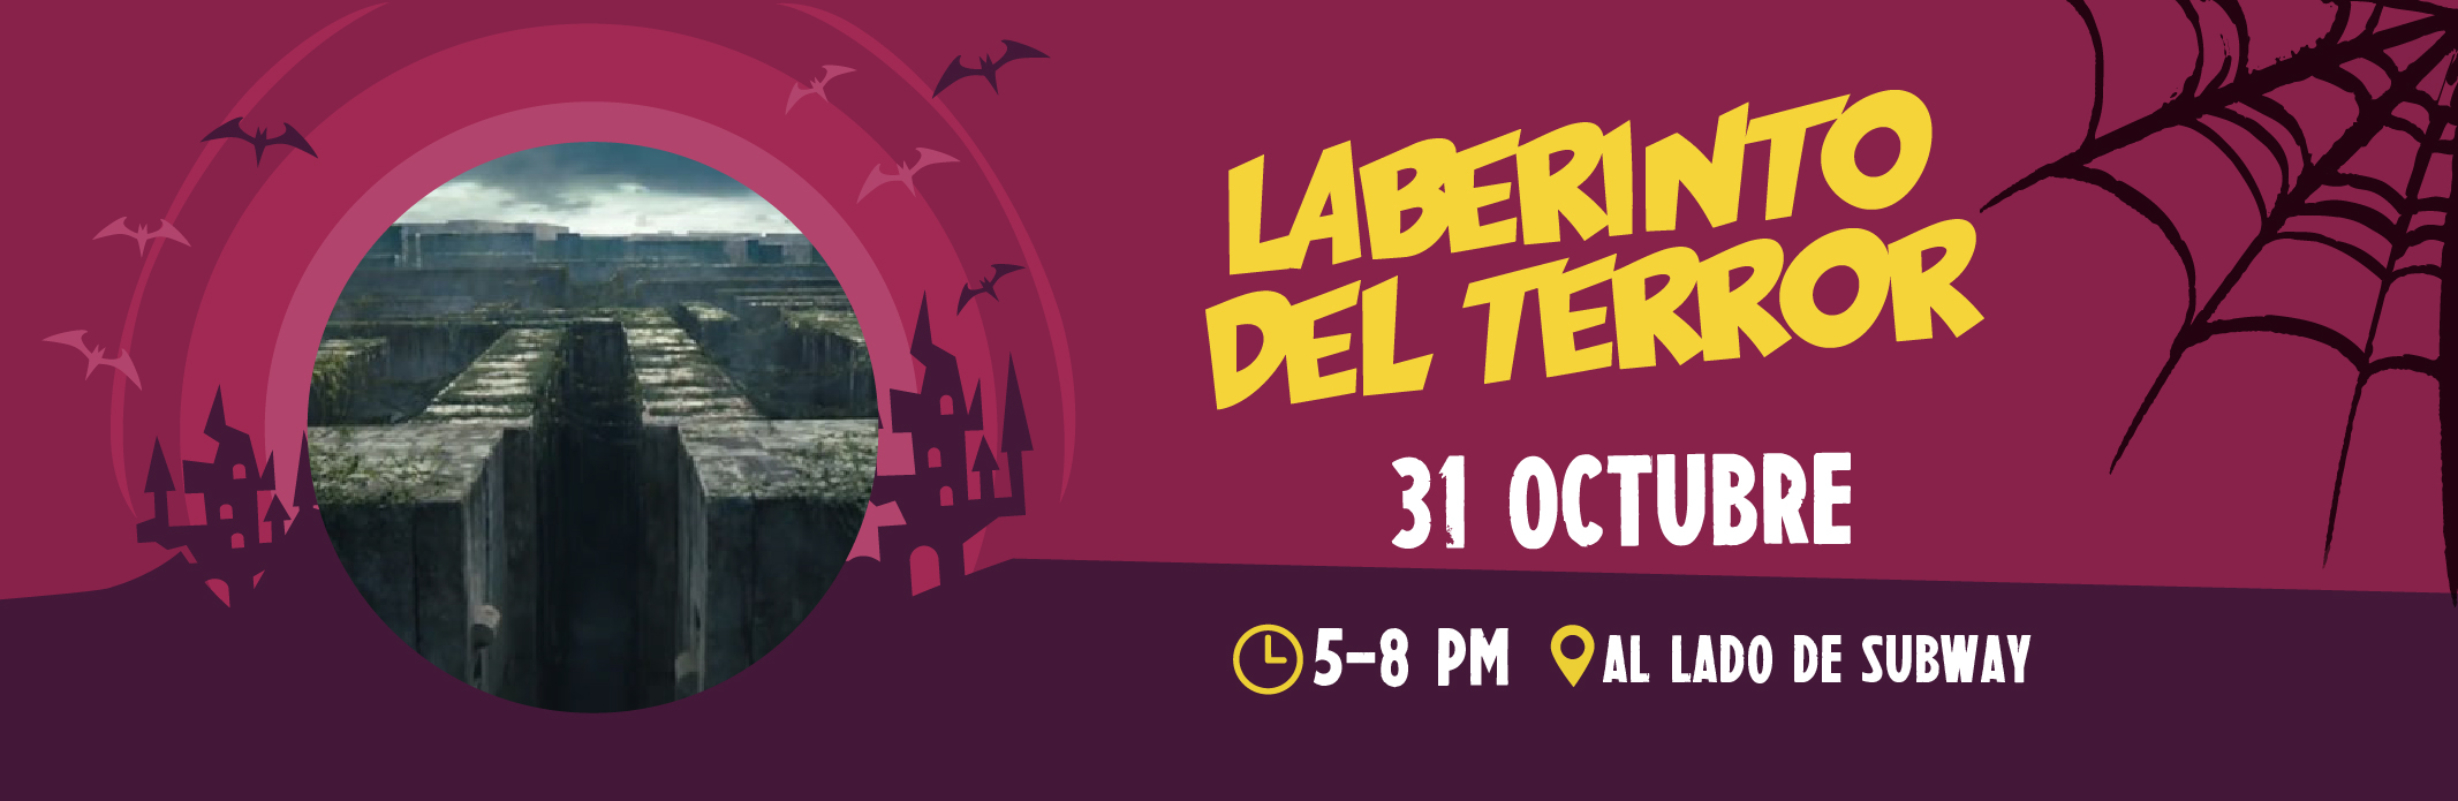 paseo banners oct18-01